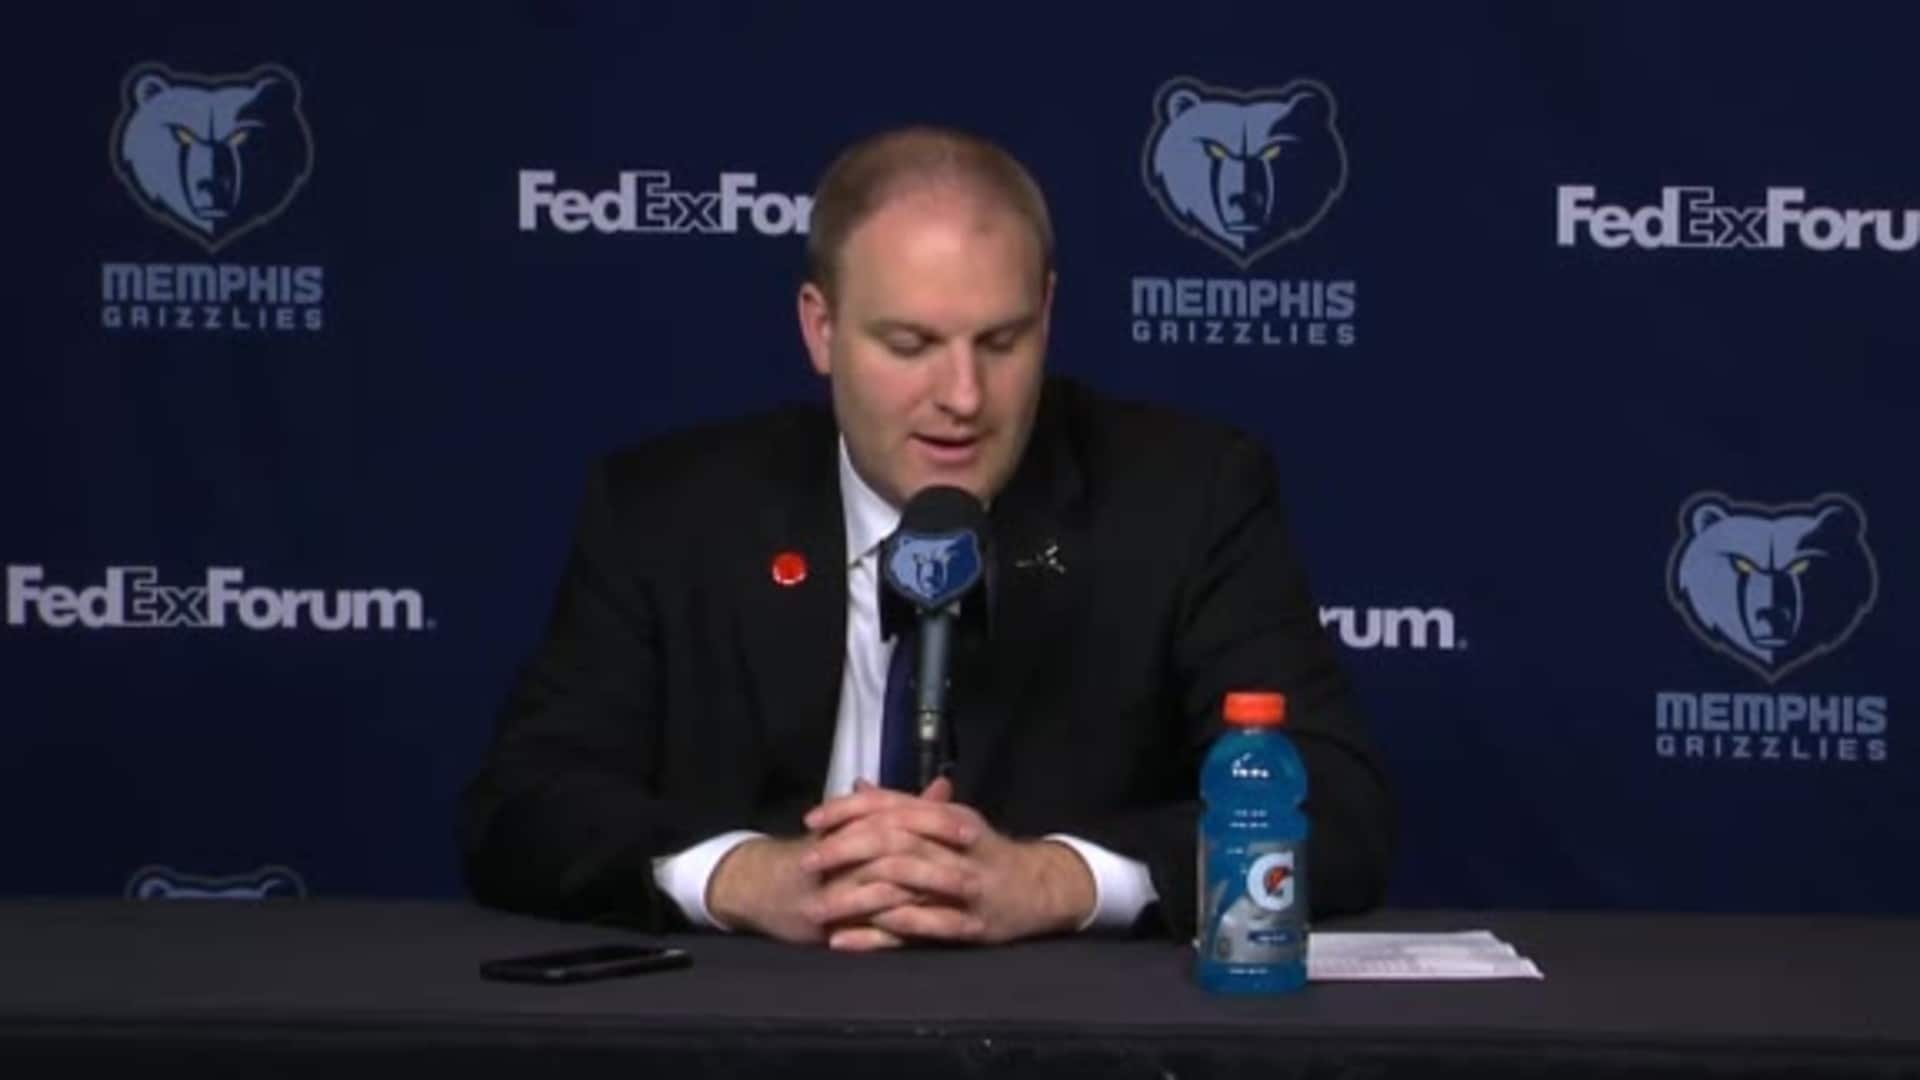 MEMvDEN: Postgame press conference 1.28.20